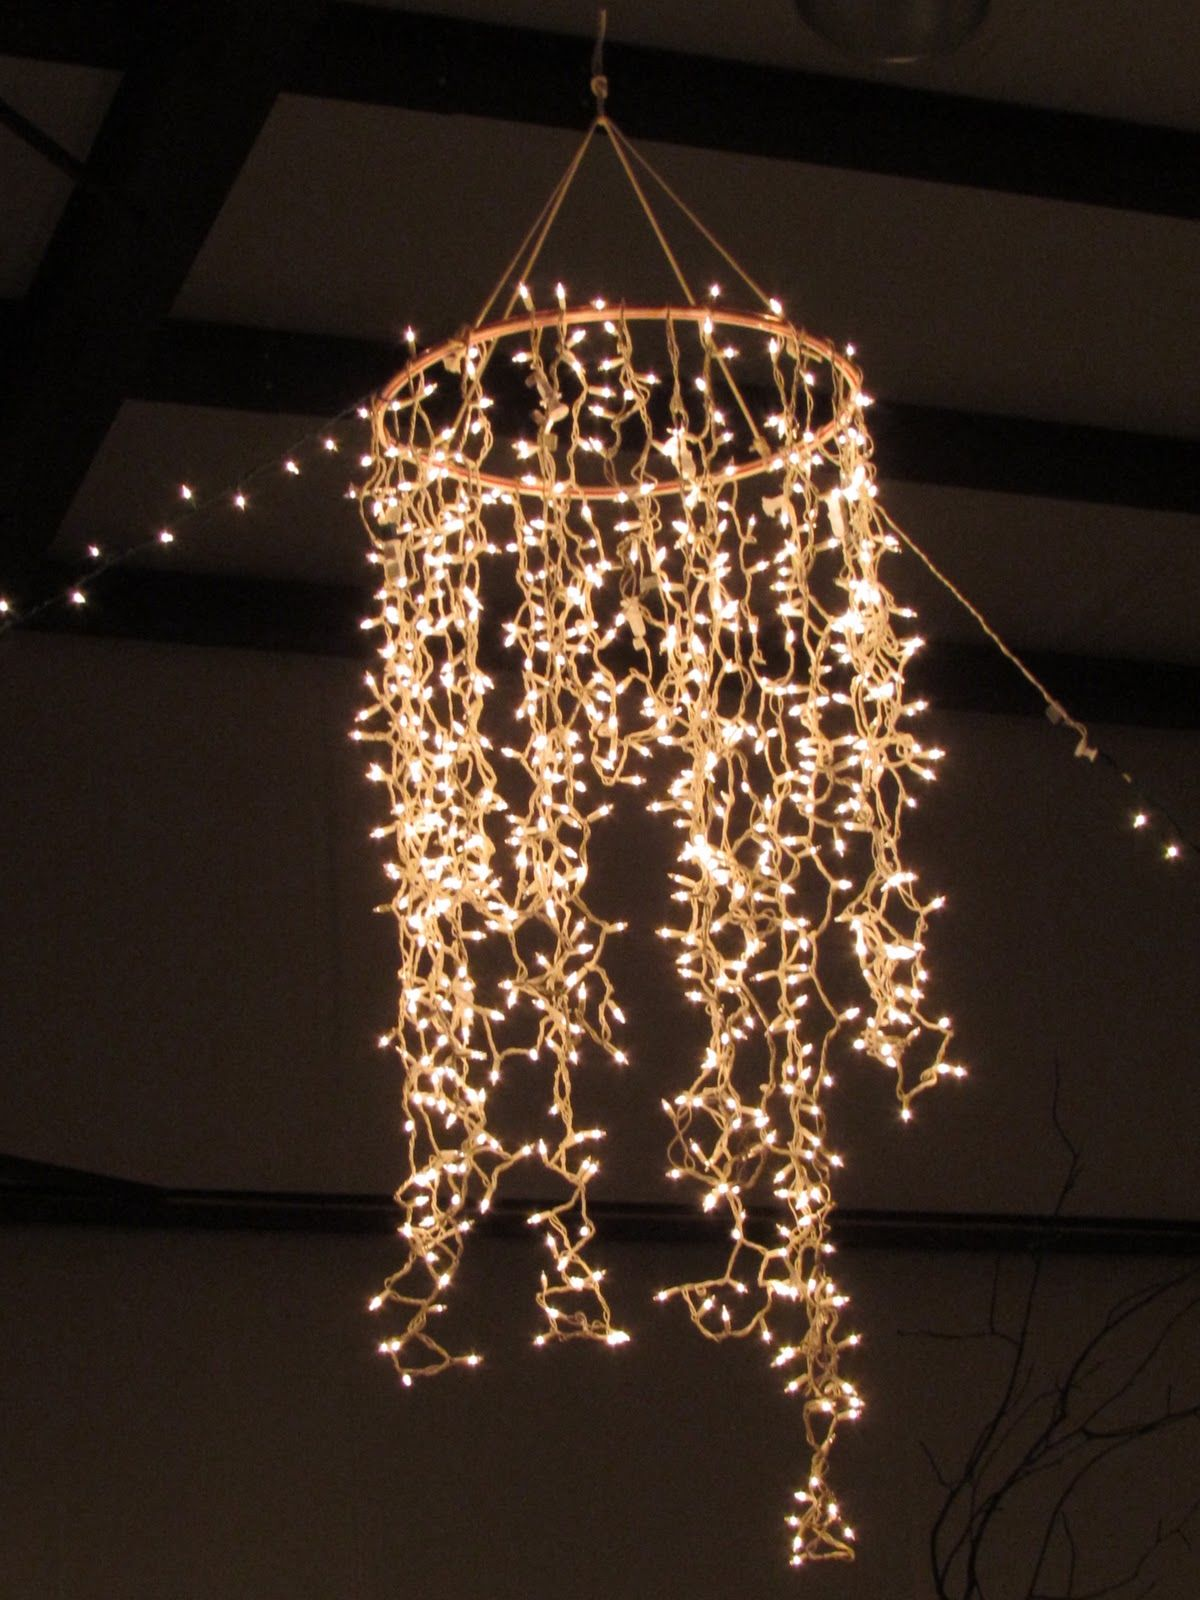 Hula Hoop Chandelier Pictures, Photos, and Images for Facebook ...